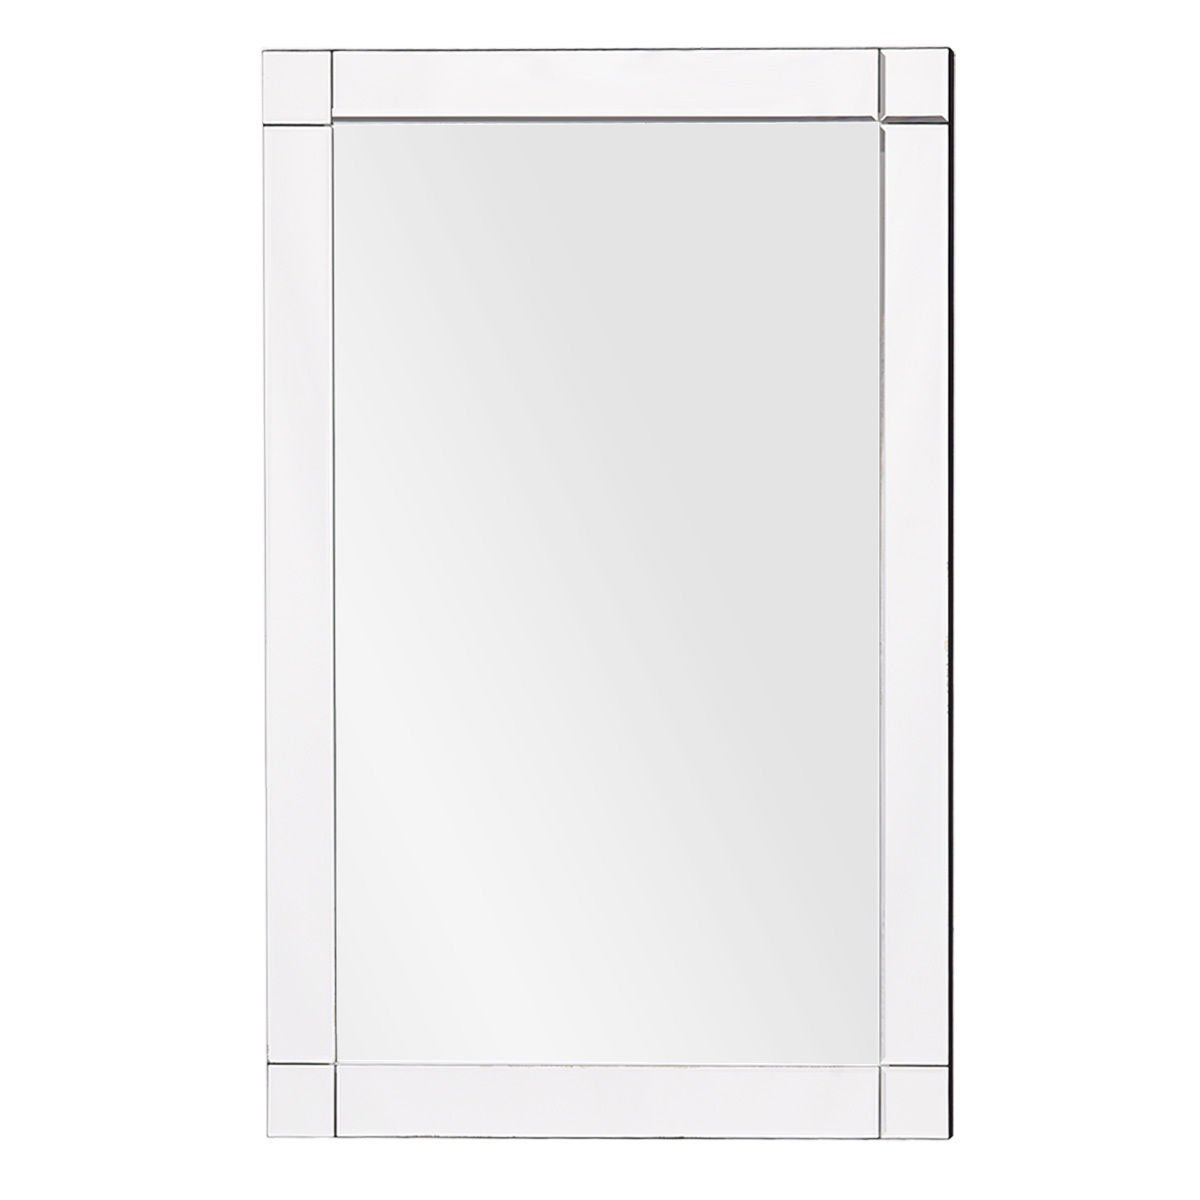 Wall Mirror Rectangle Vanity Bathroom Home Furniture Decor MDF Frame 36''